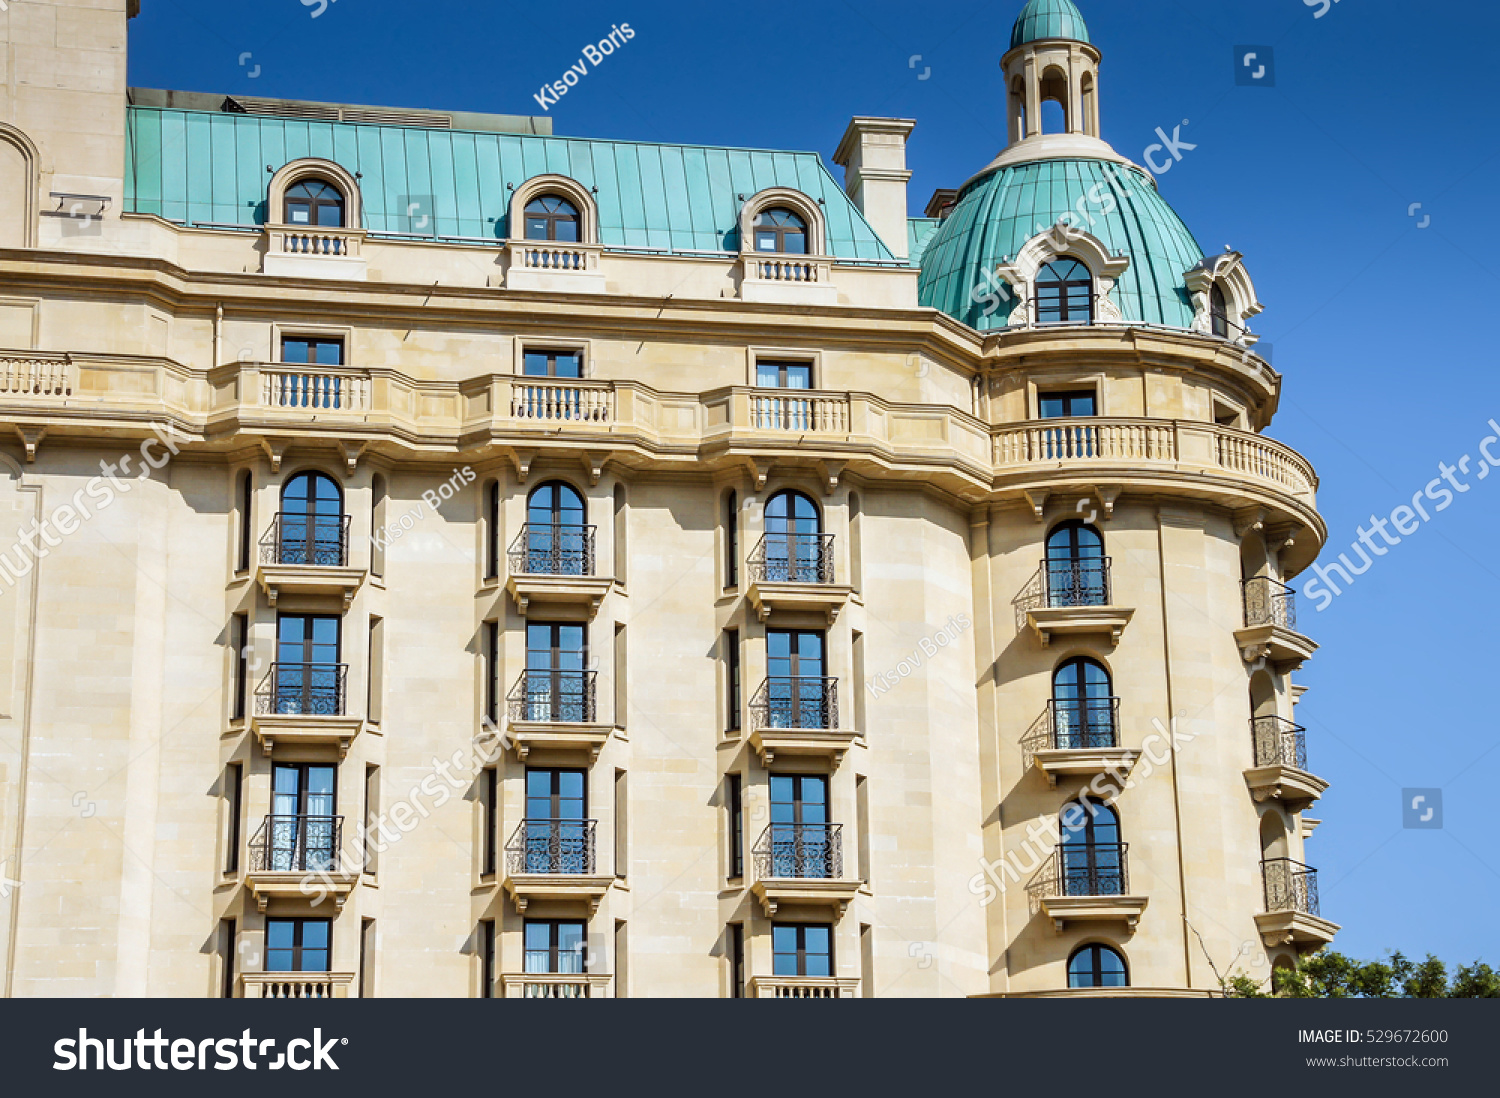 Historical Hotel Building With Cozy Accommodation In European City Old